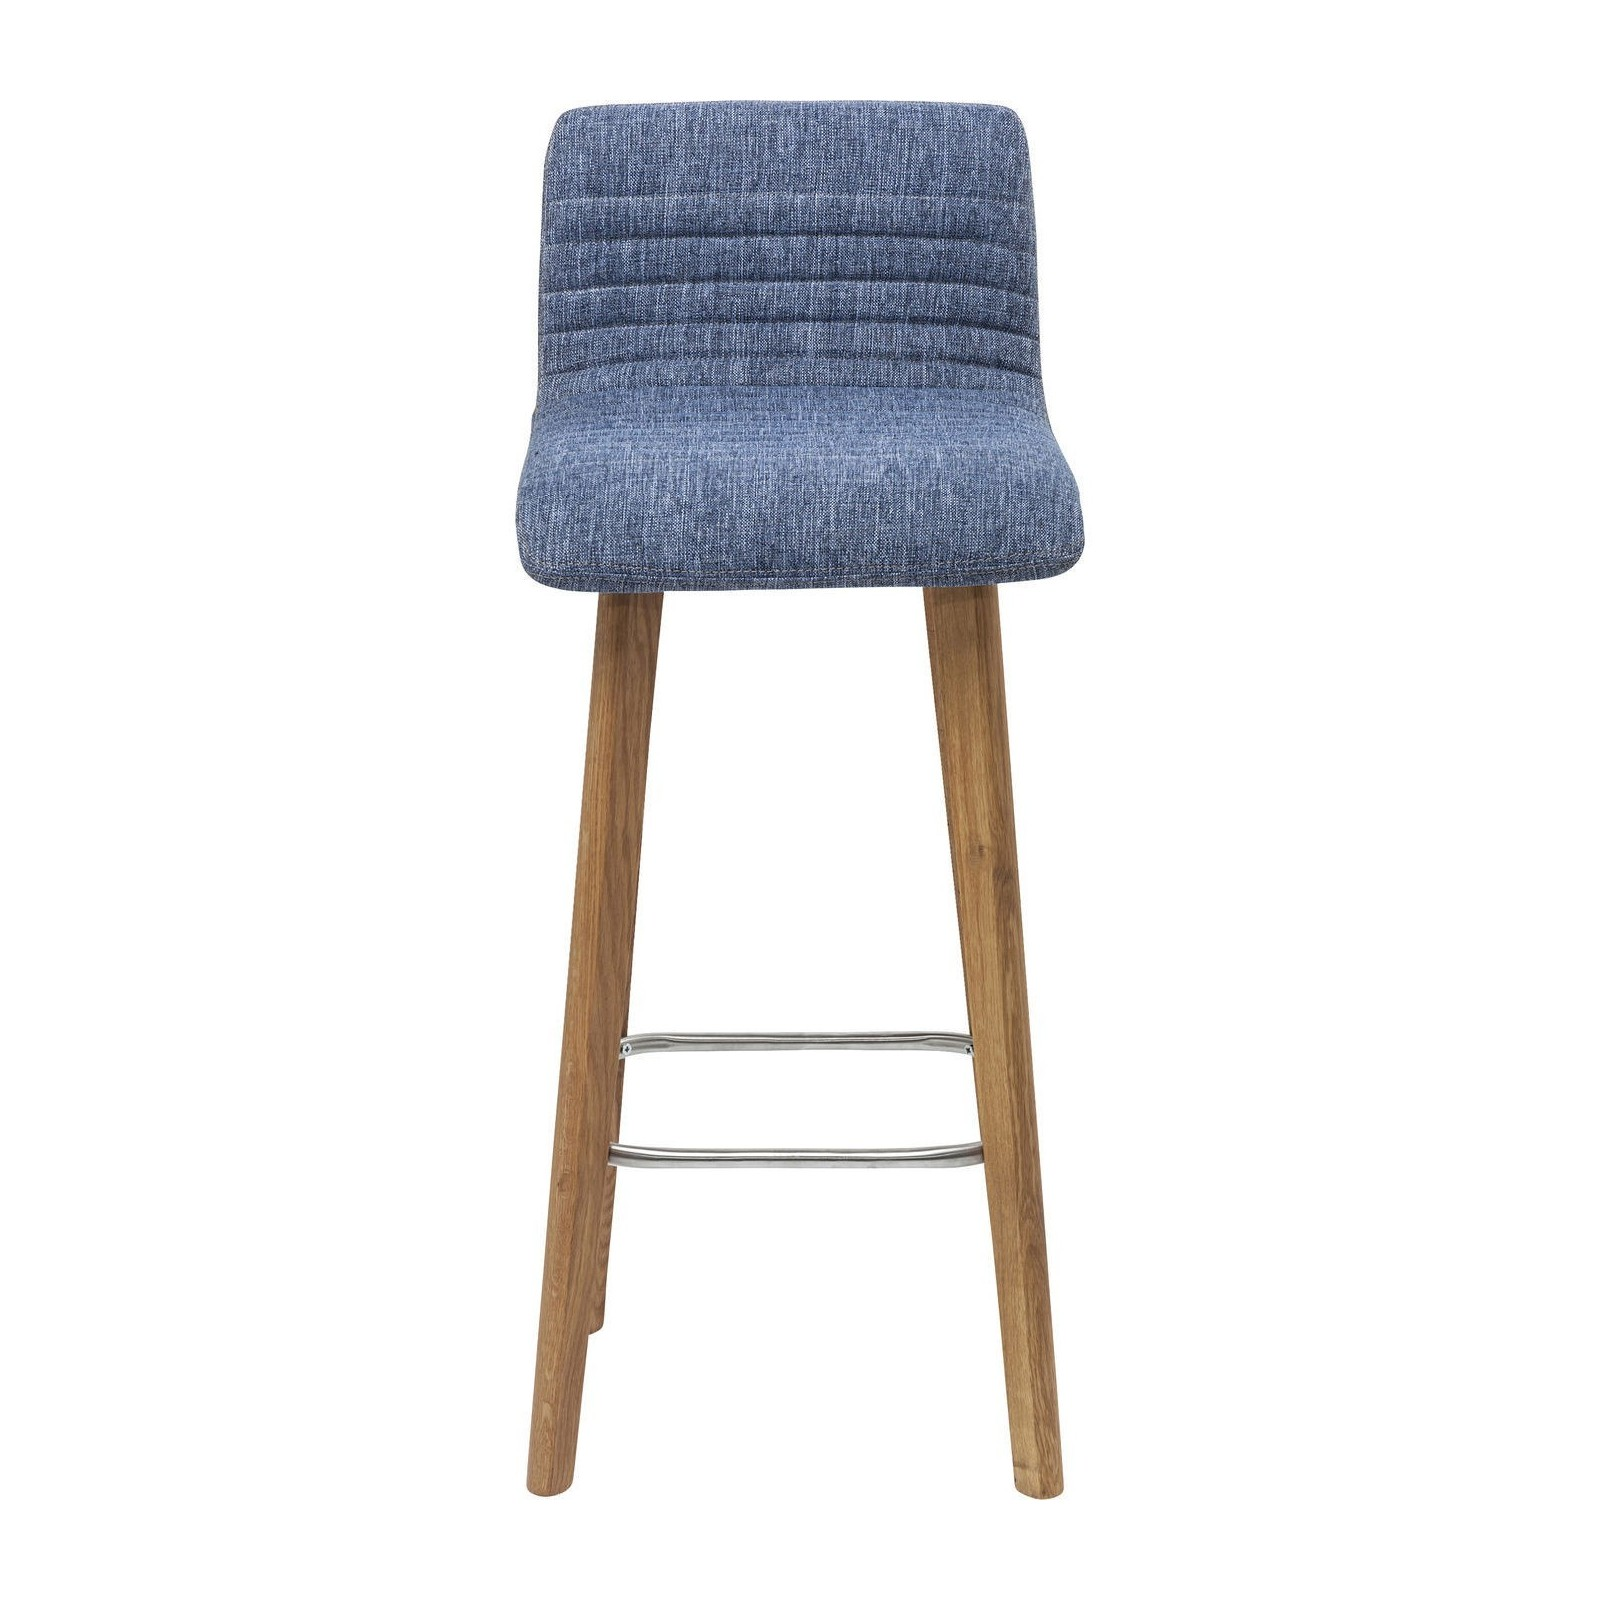 tabouret de bar scandinave bleu lara kare design. Black Bedroom Furniture Sets. Home Design Ideas